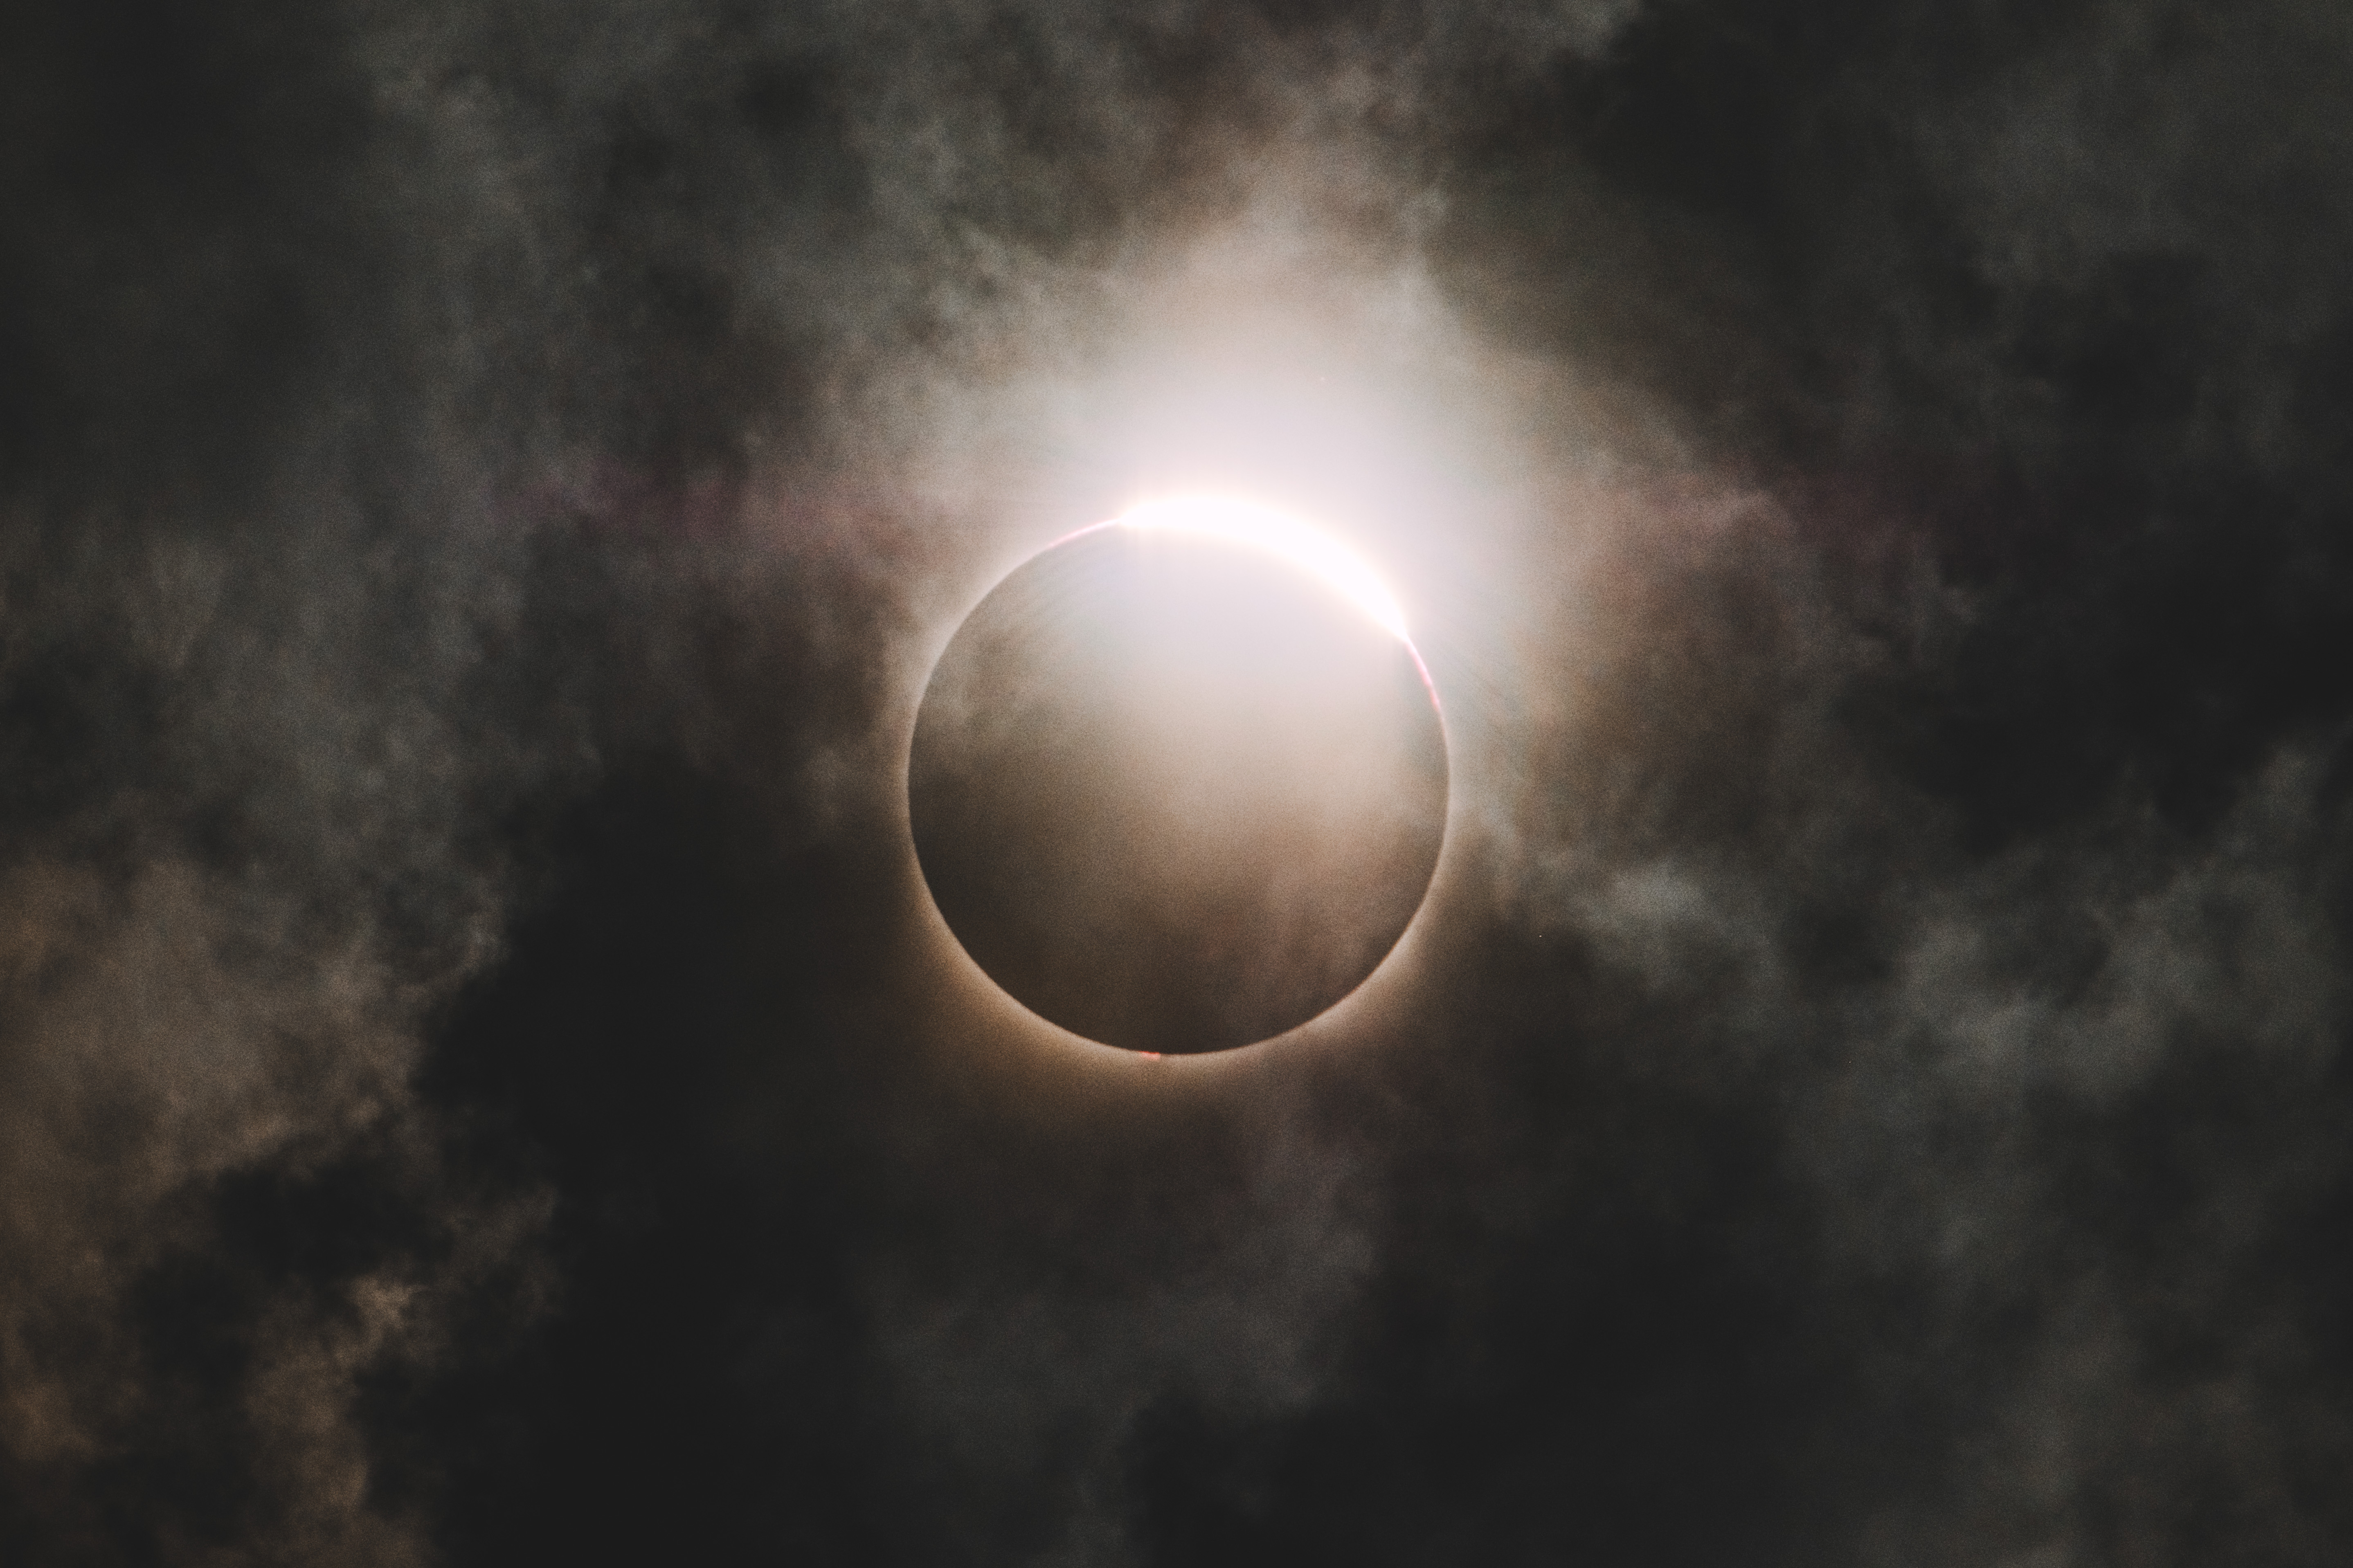 a solar eclipse darkening the sky as clouds passed by it cool backgrounds p81 cool